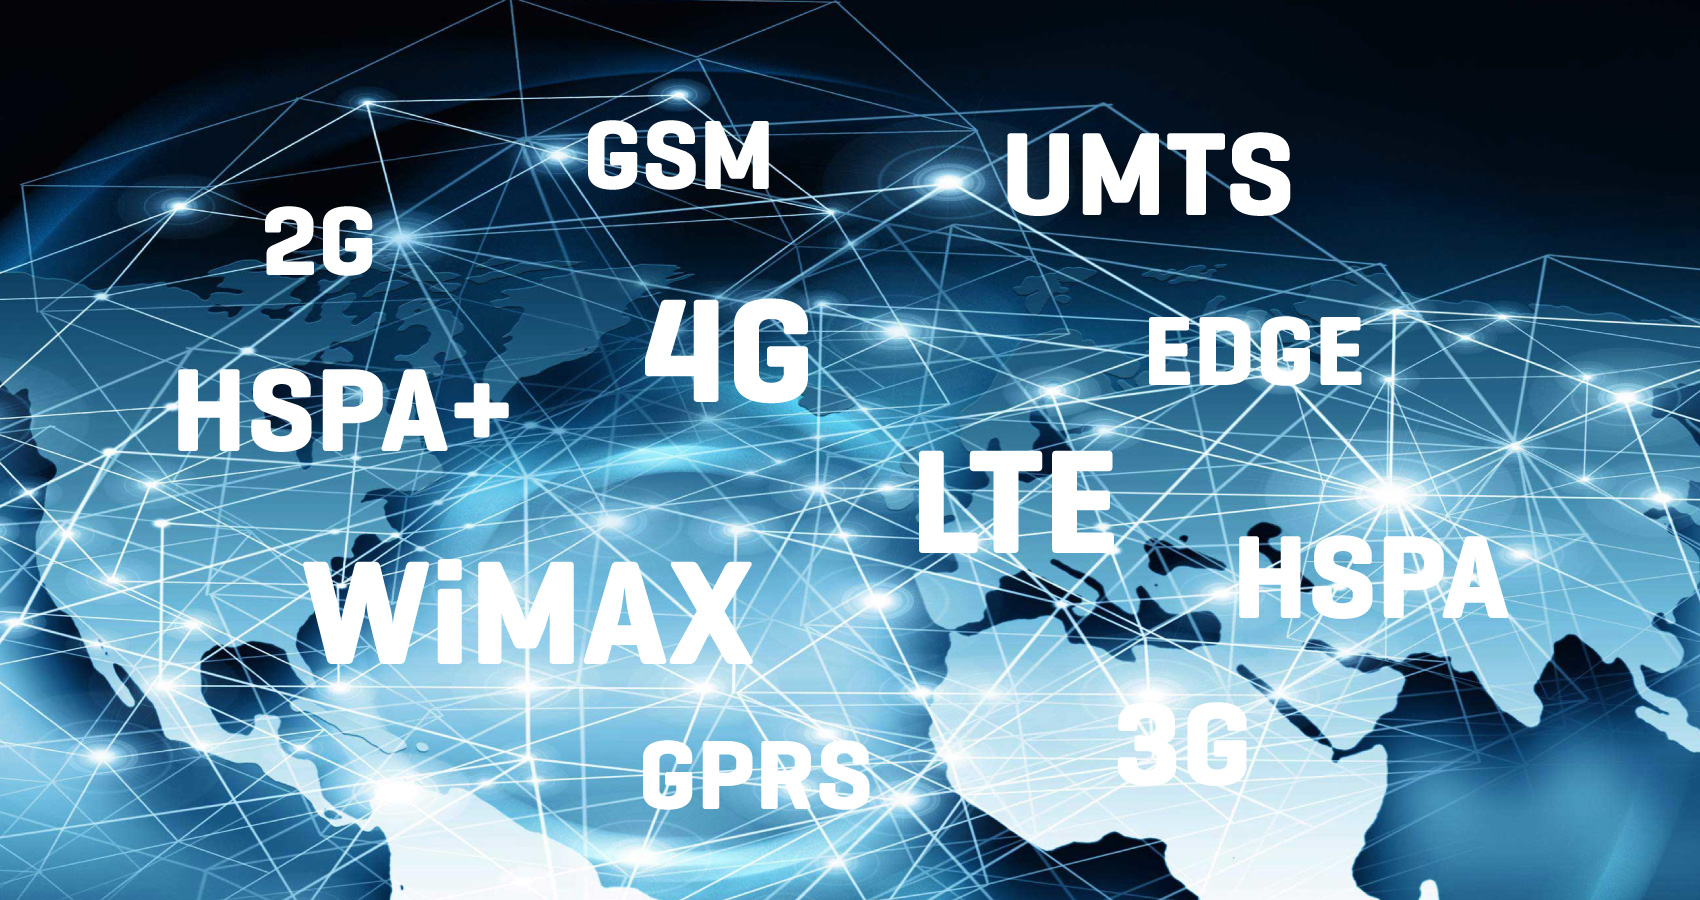 Global 2G and 3G Switch Off Market 2018 - by Manufacturers, Regions, Type, Application, Sales, Revenue, and Forecast to 2025